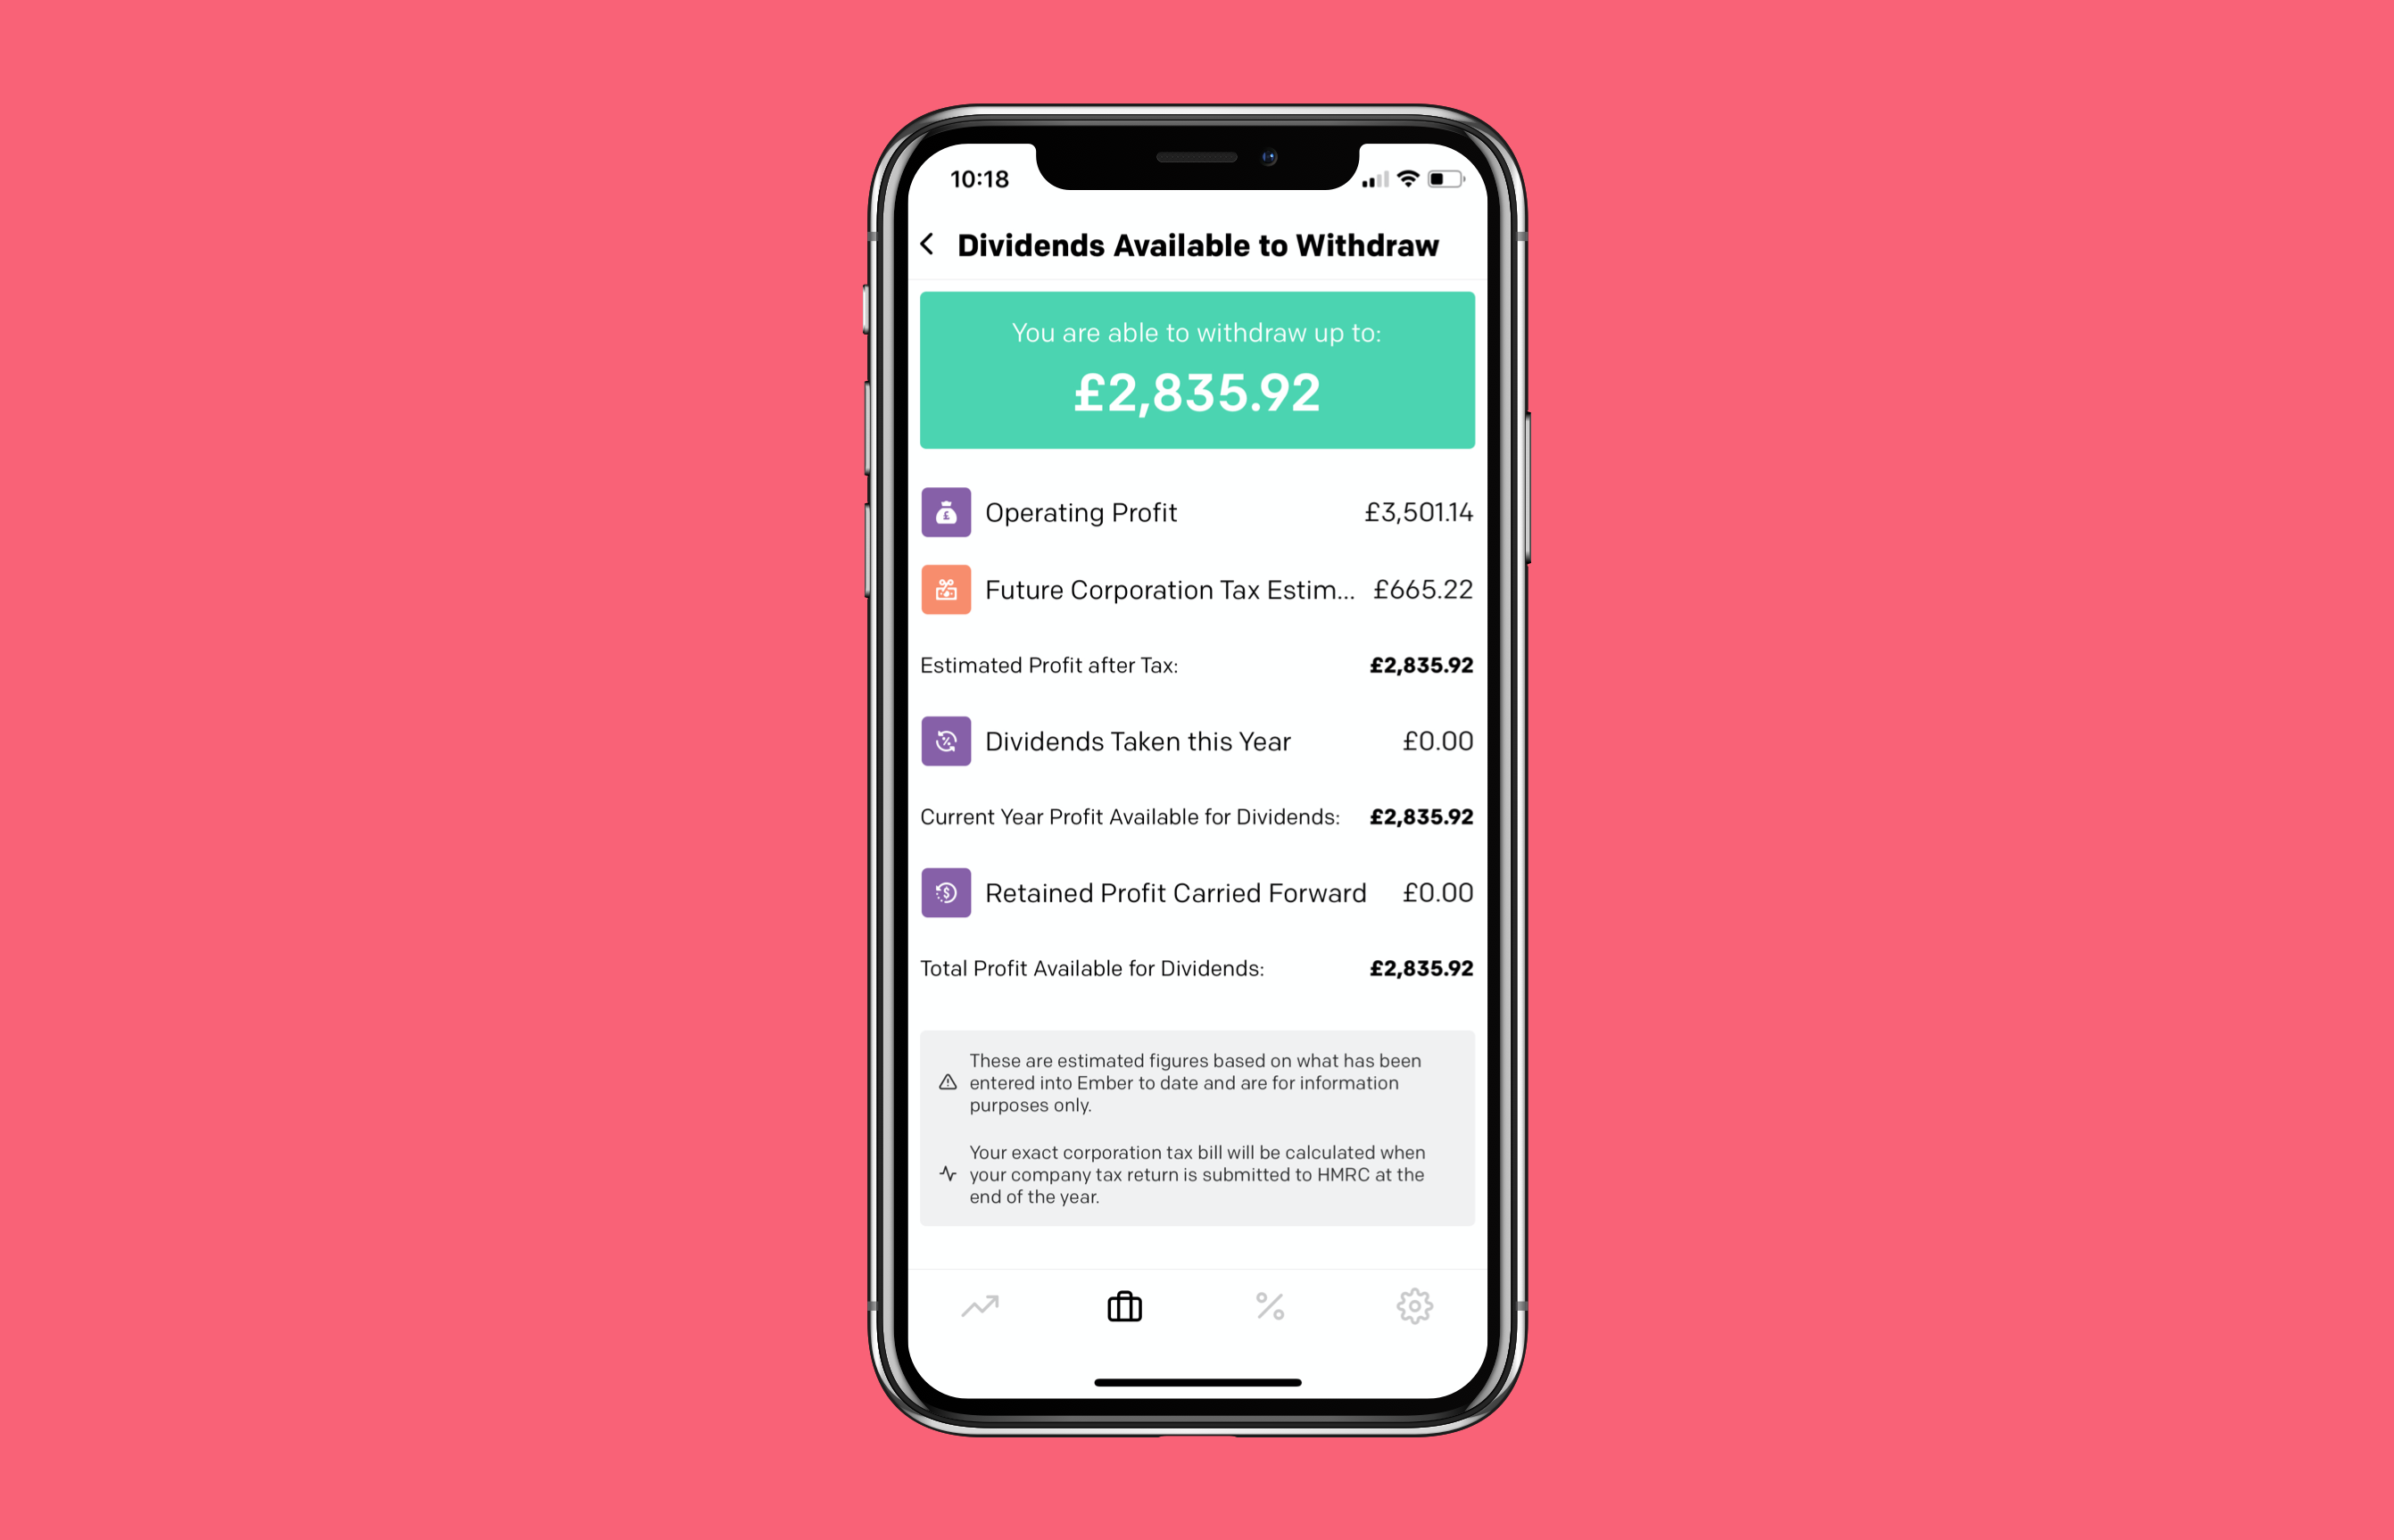 Dividends available to withdraw report on an iPhone screen